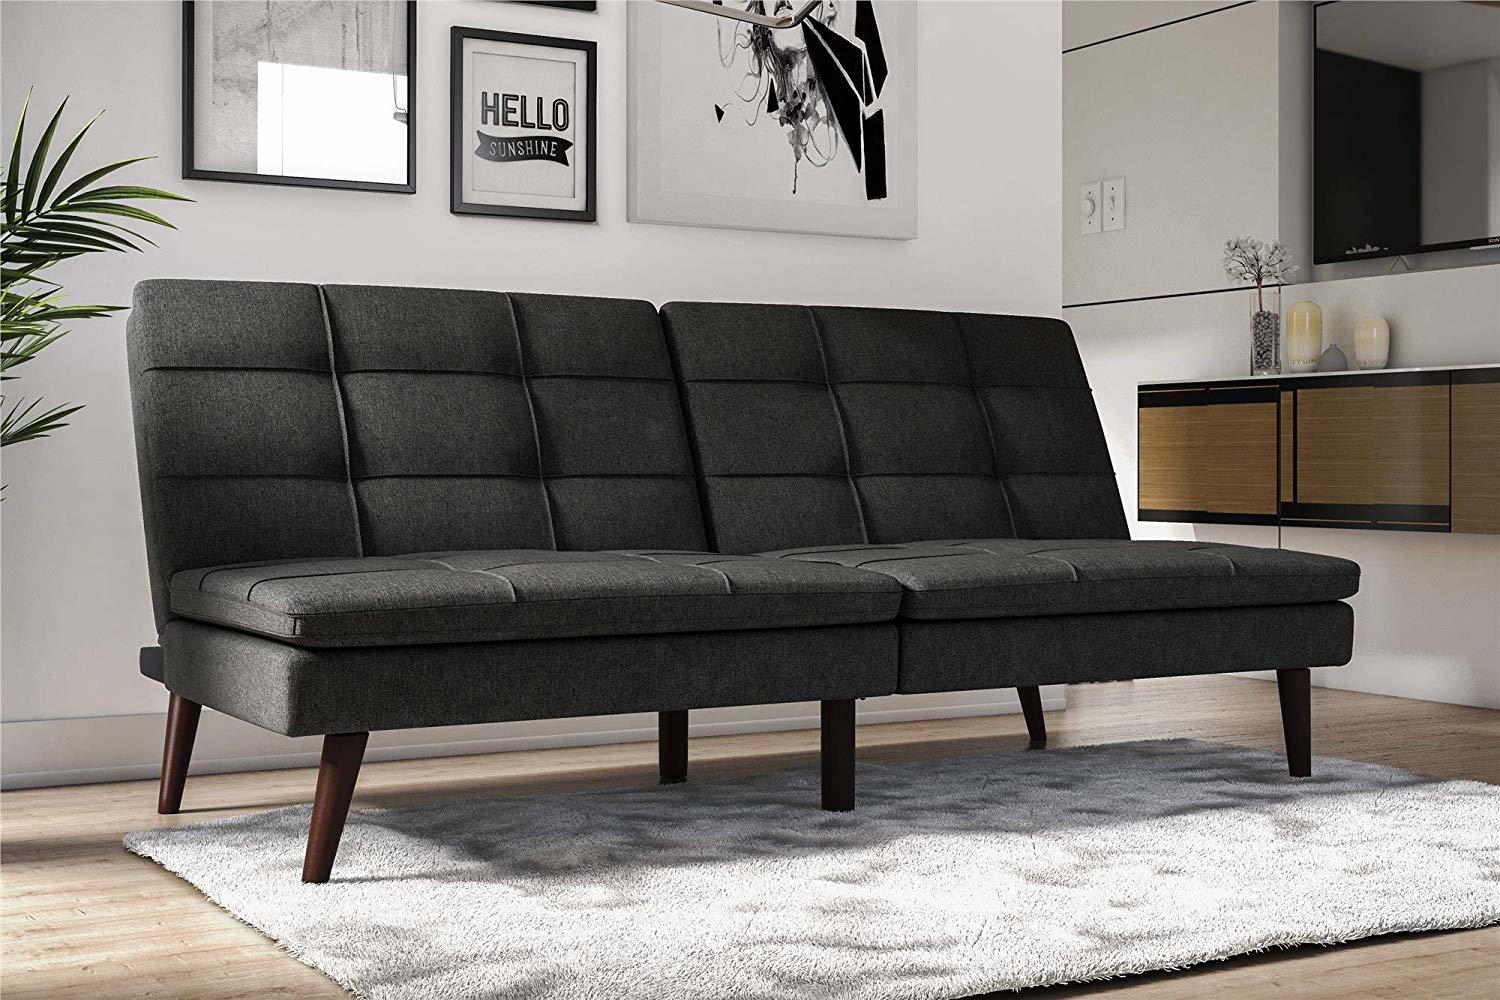 Surprising Most Comfortable Sleeper Sofas In 2019 Complete Buyers Guide Pabps2019 Chair Design Images Pabps2019Com